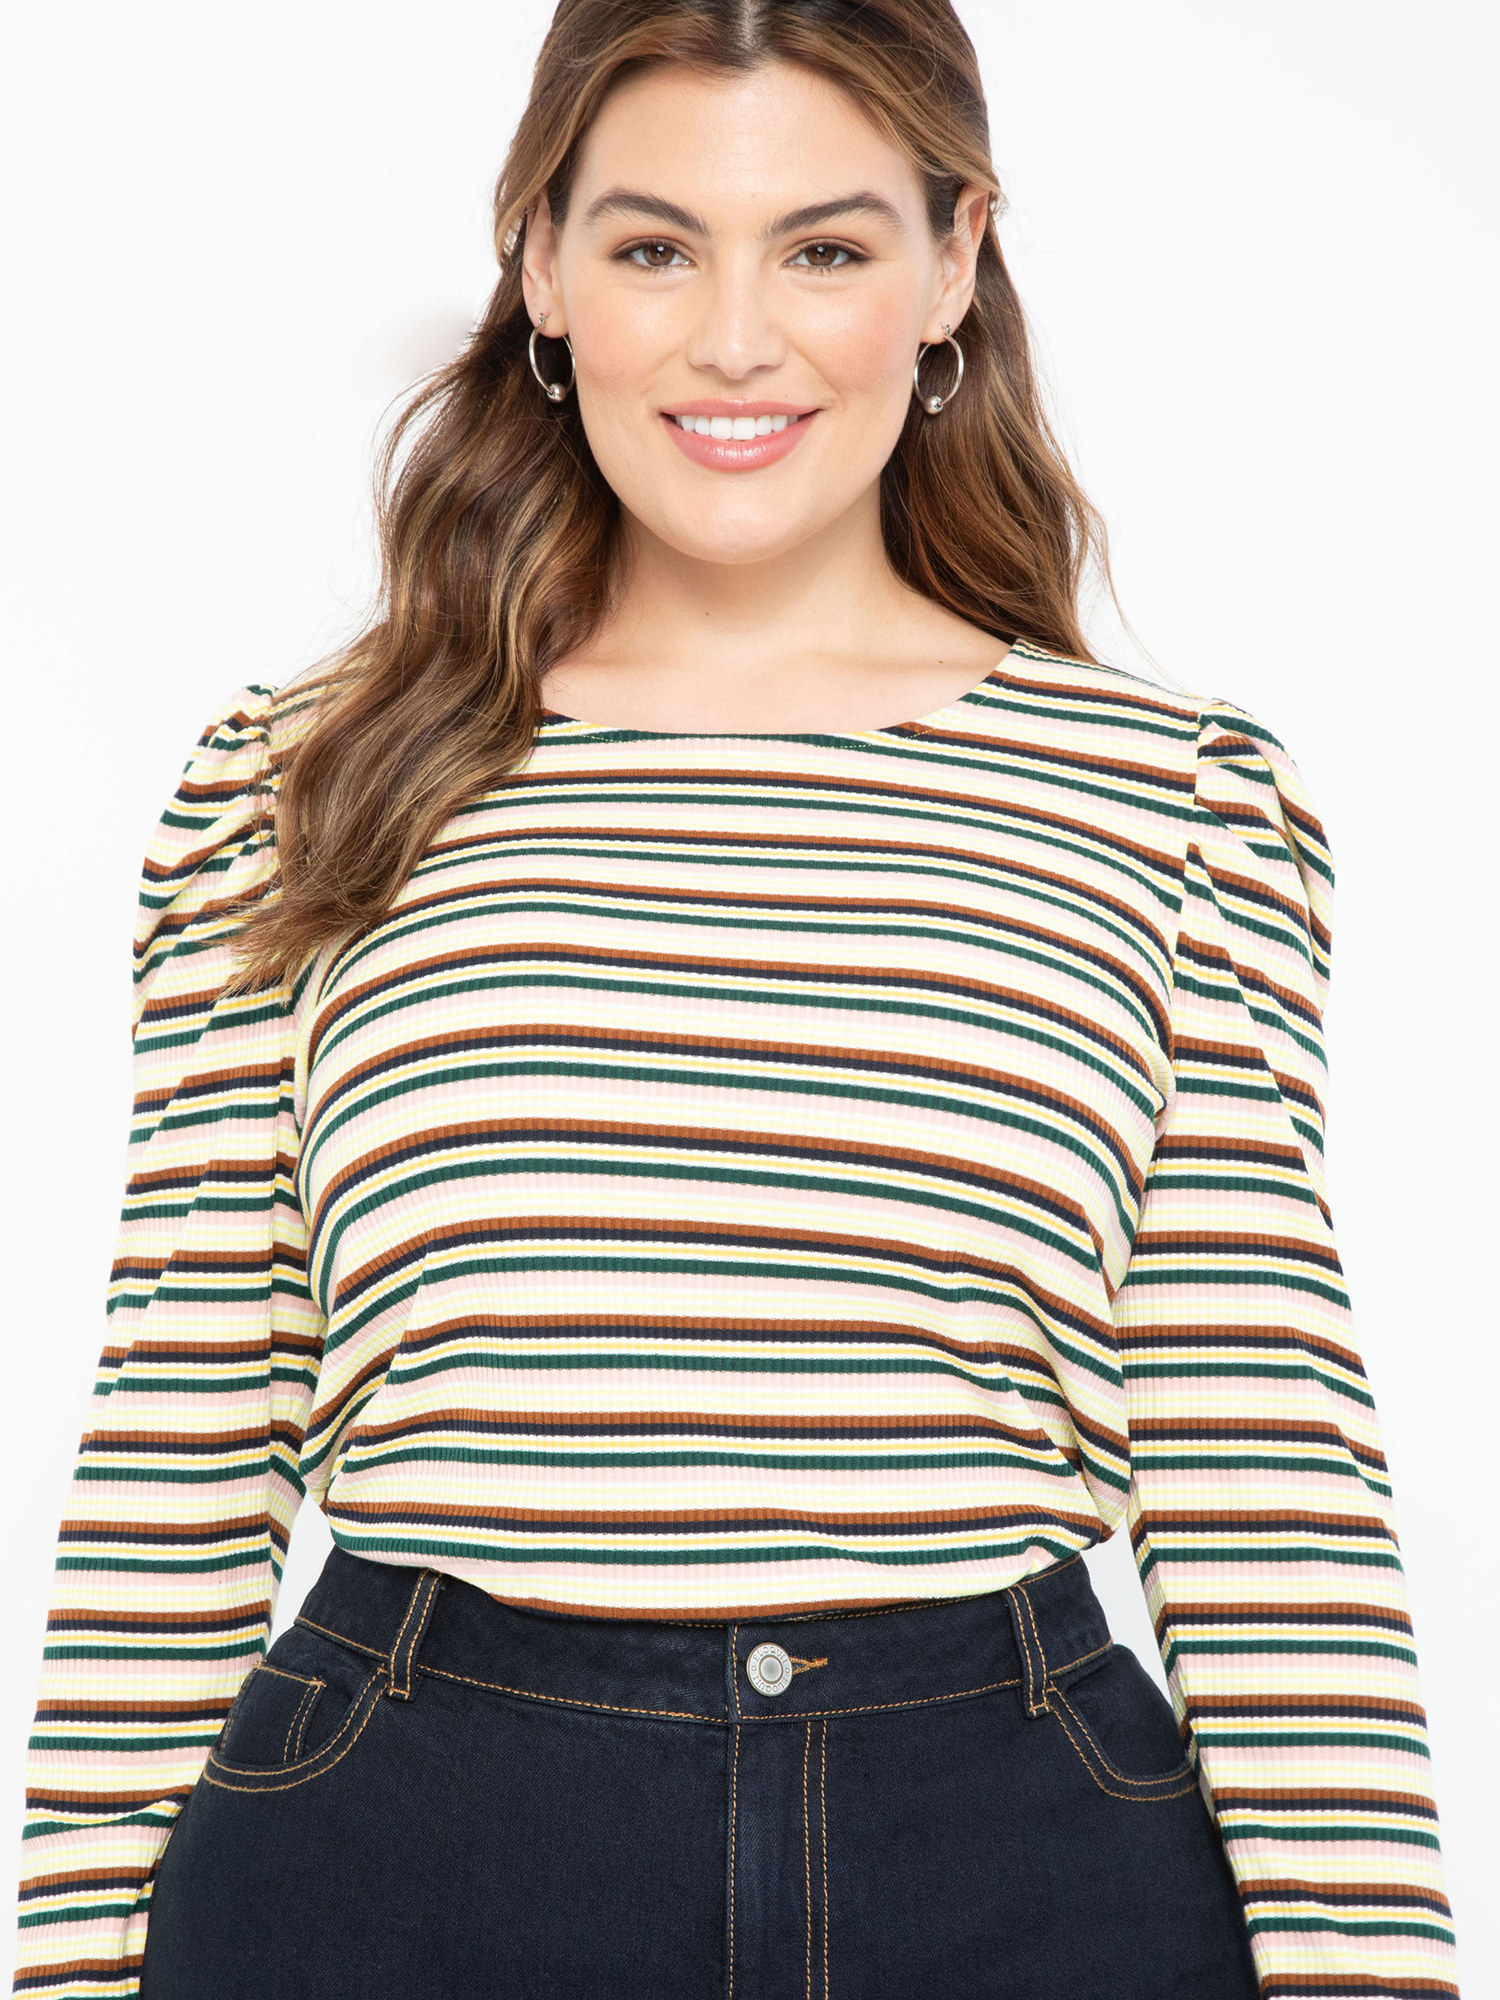 person wearing striped t shirt tucked into a jeans